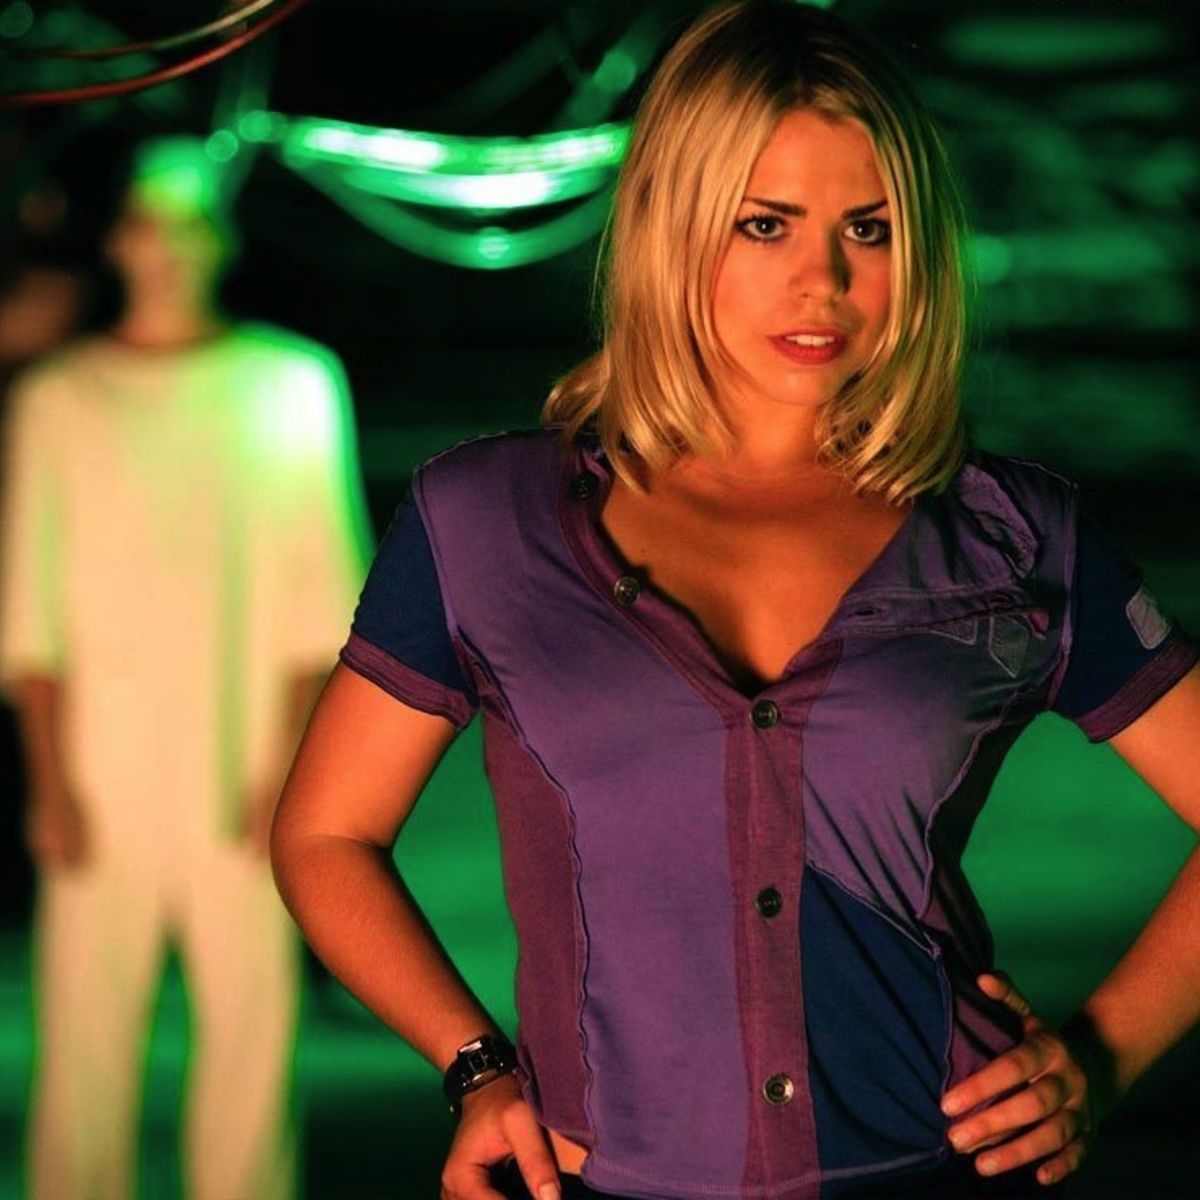 Rose-Tyler-Wallpaper-rose-tyler-1535453-1024-768.jpg